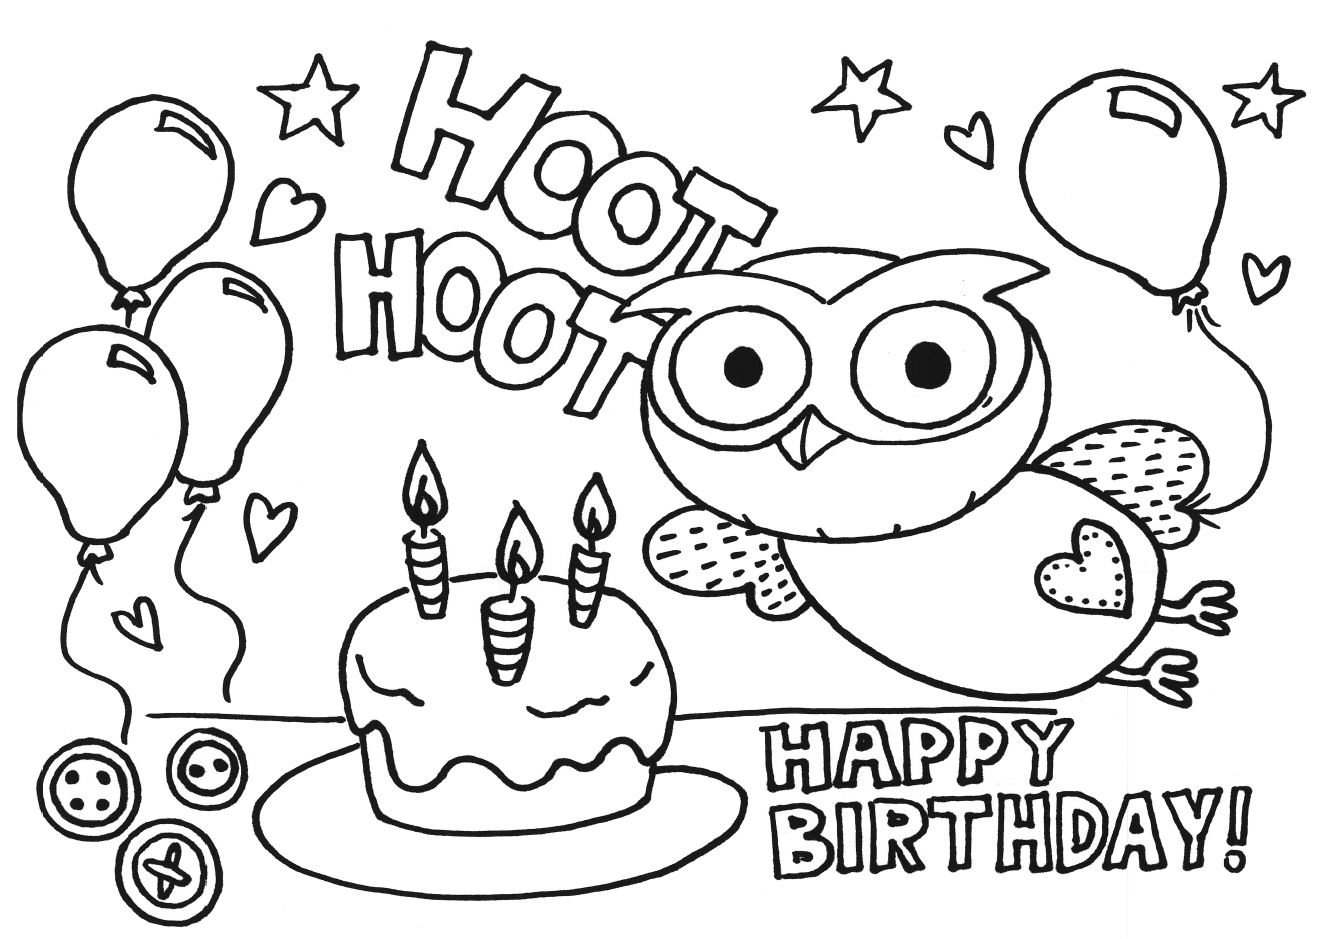 dinosaur birthday coloring pages ; birthday-coloring-pages-happy-birthday-coloring-page-gigle-hoot-hoot